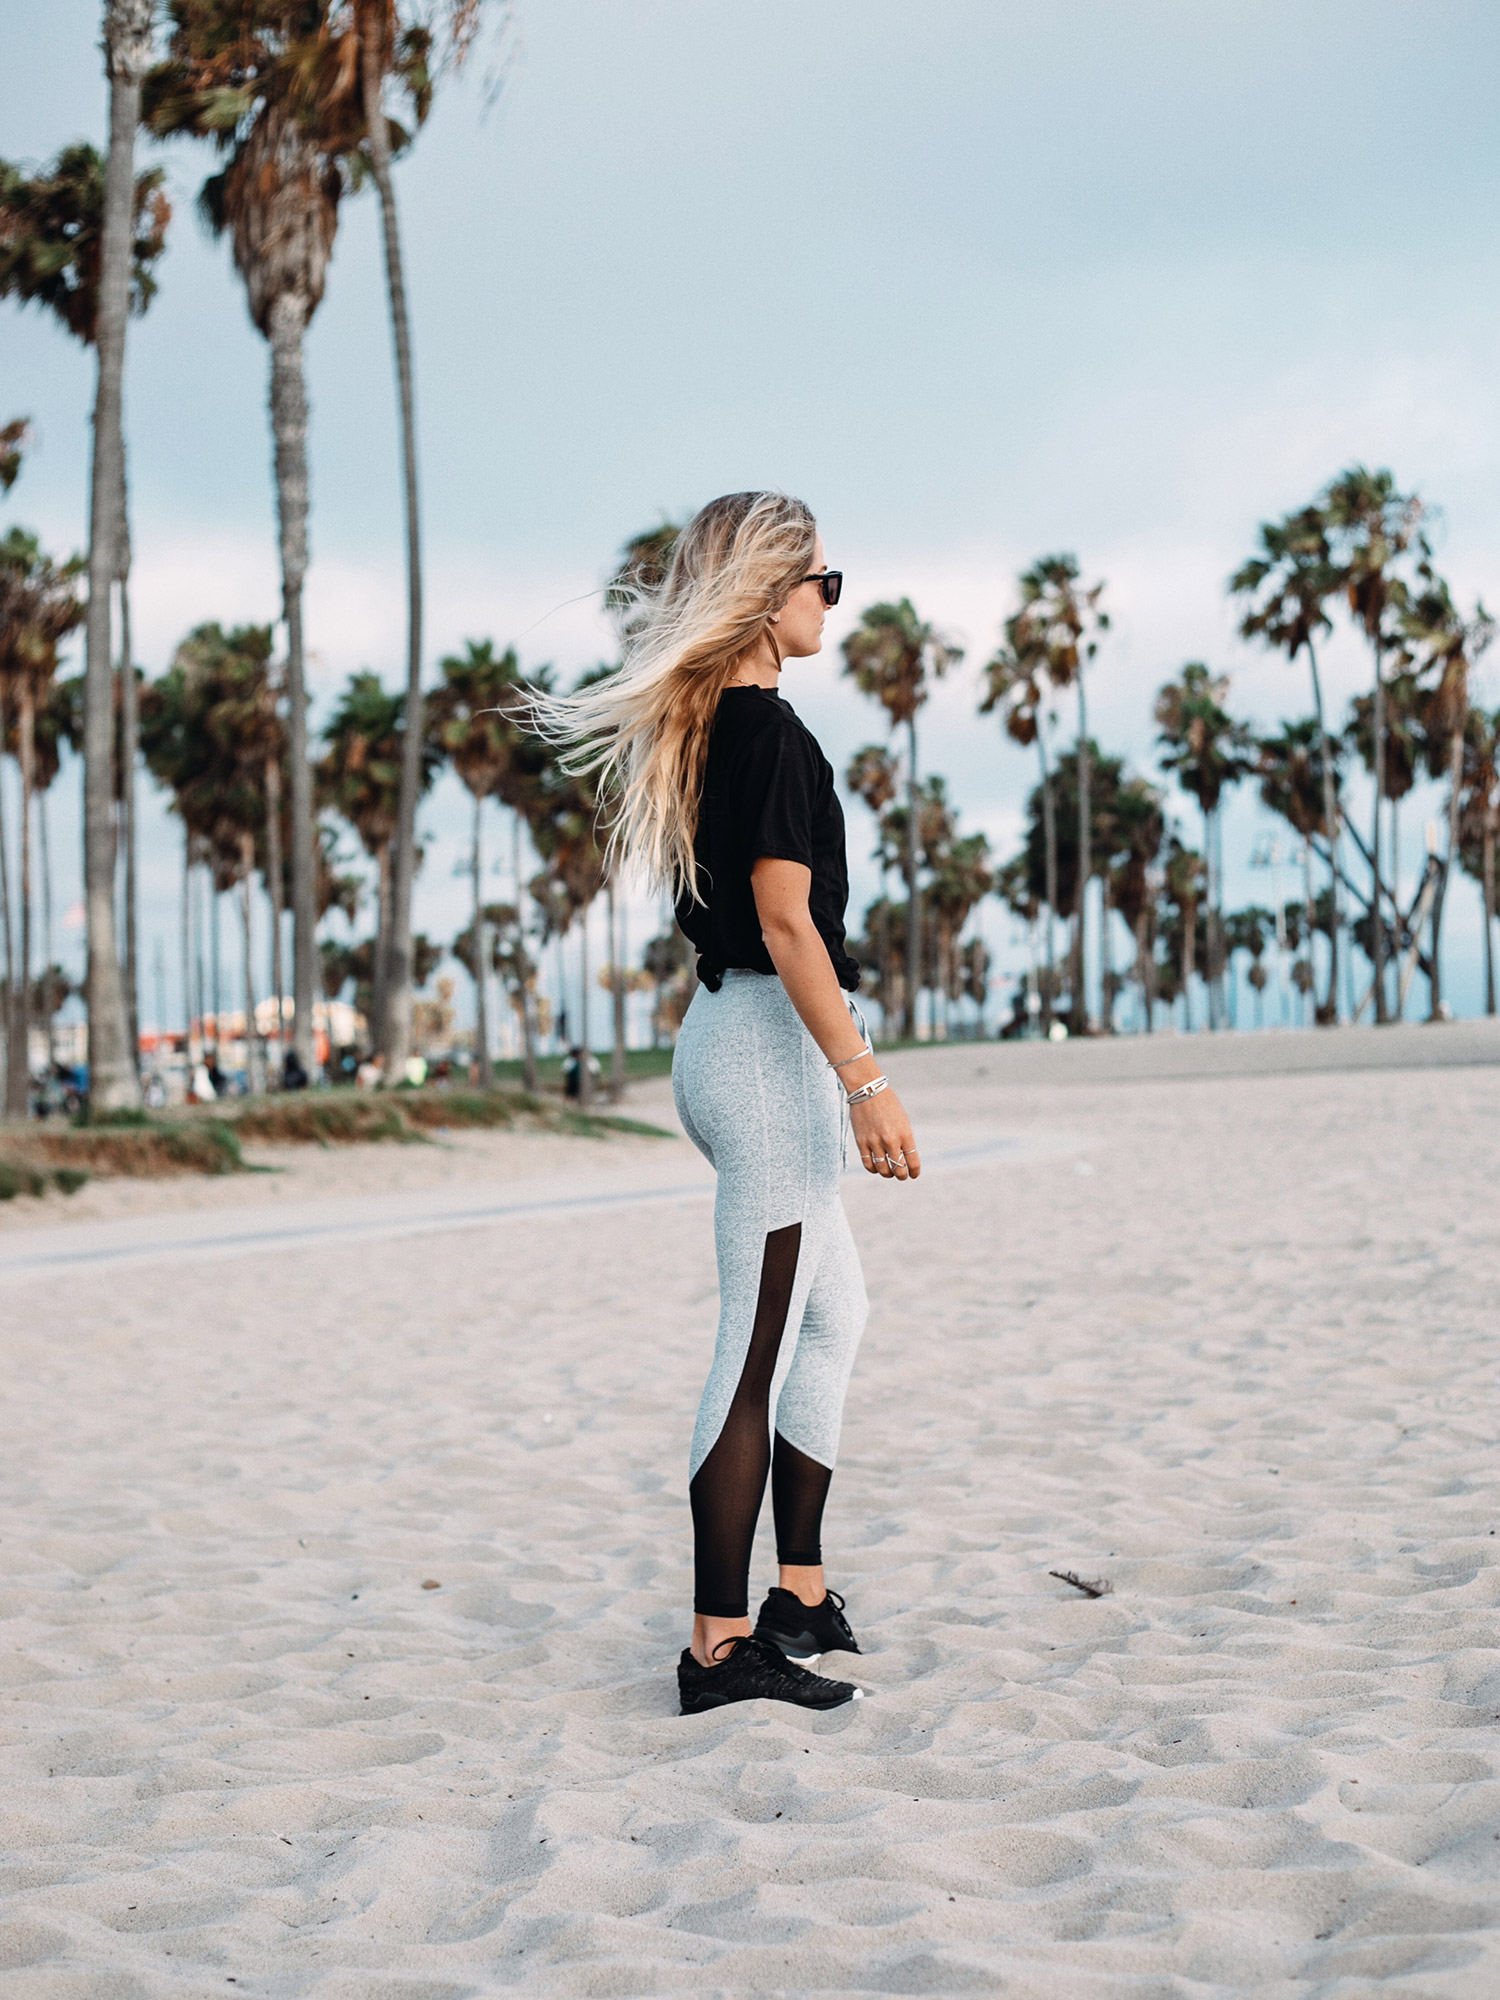 Cute Workout Outfit / Activewear / Lifestyle Photography / Kelly Fiance Creative